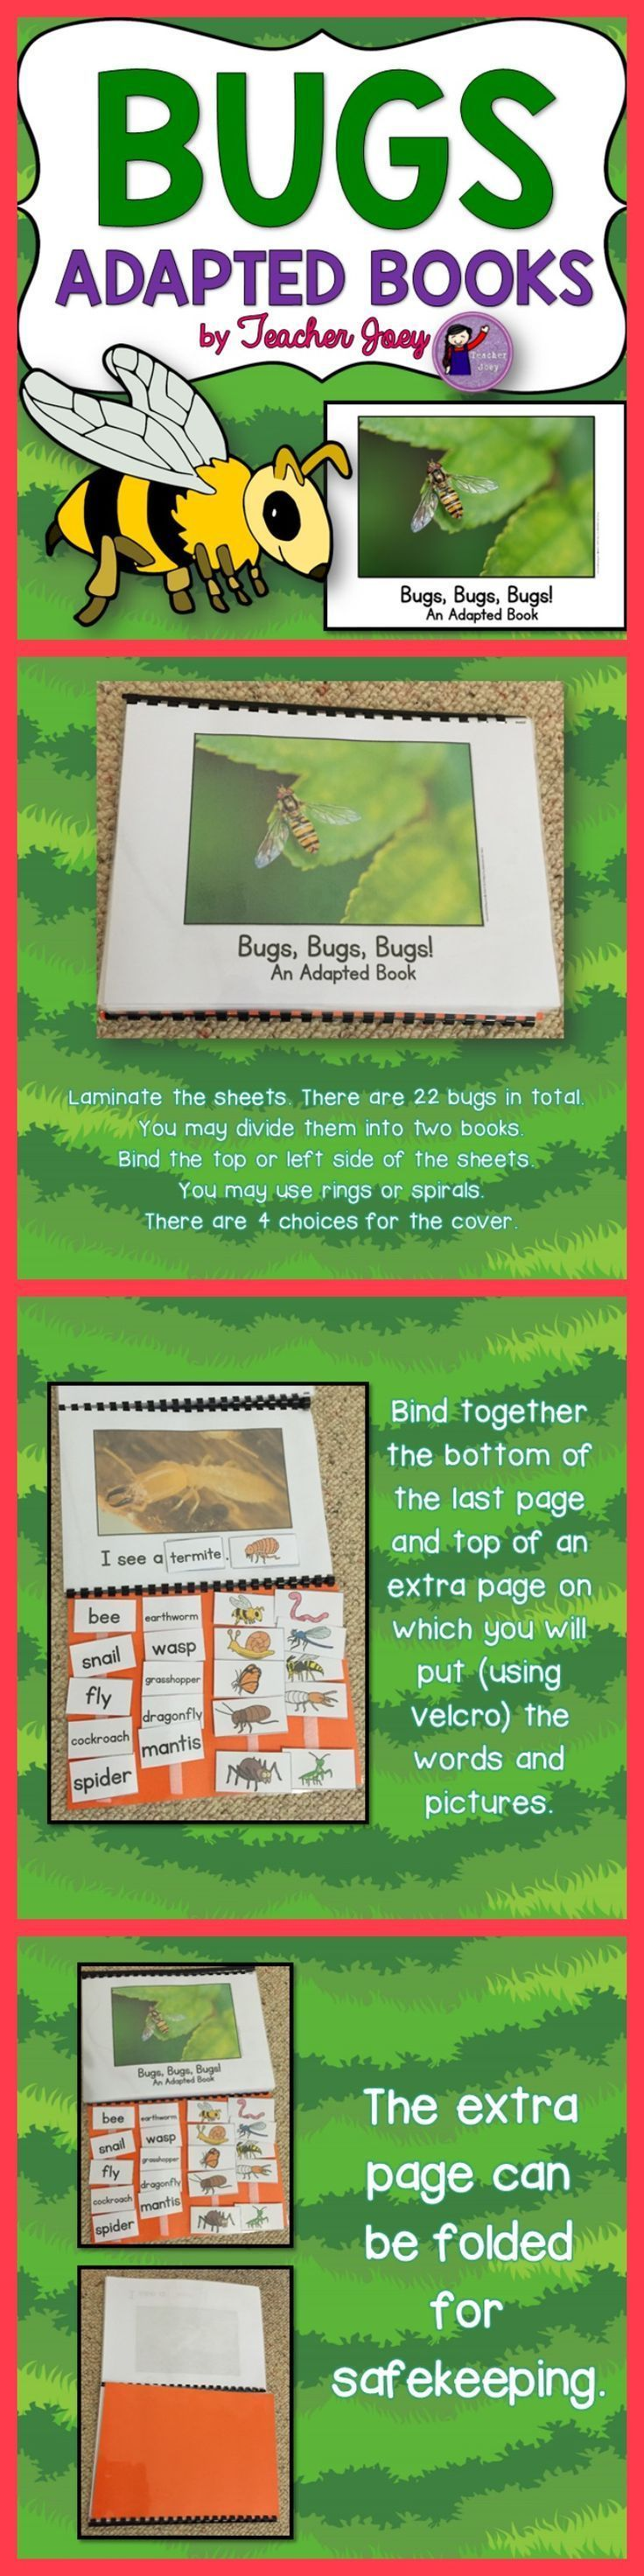 This bugs adapted book unit includes 2 versions of adapted books with 22 pages each with images of bugs or insects. This will help your students to develop their bugs vocabulary and basic reading skills. This is made for a special education classroom and for children in the autism spectrum.  You may make two books from this set. There are 4 choices for the title of your covers.